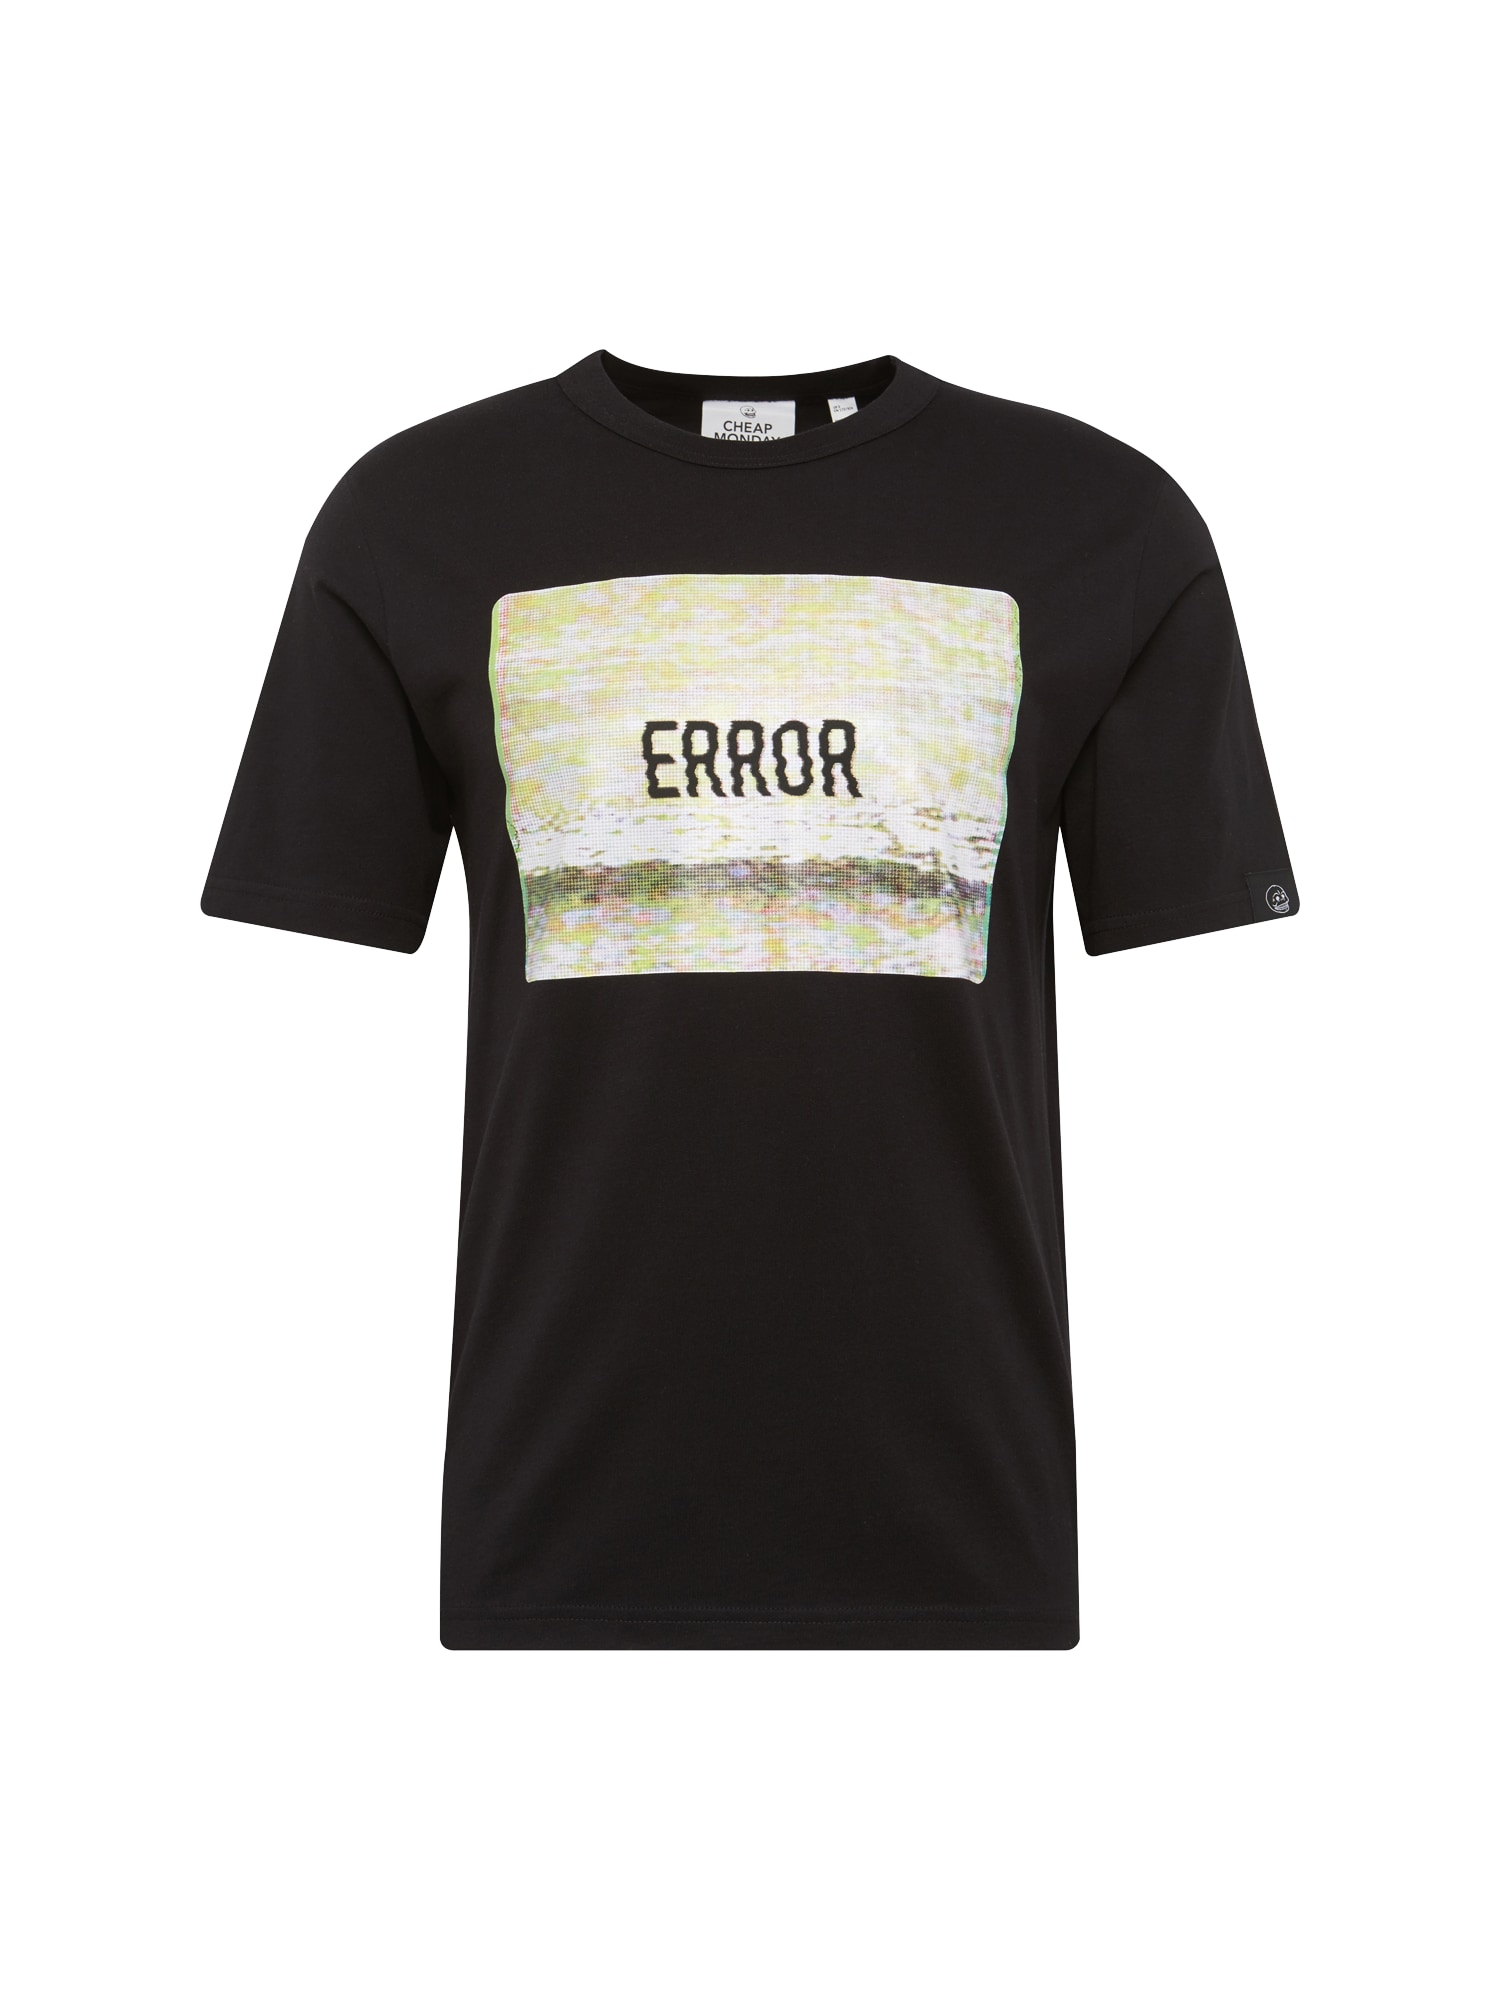 CHEAP MONDAY Heren Shirt Boxer tee Screen error zwart